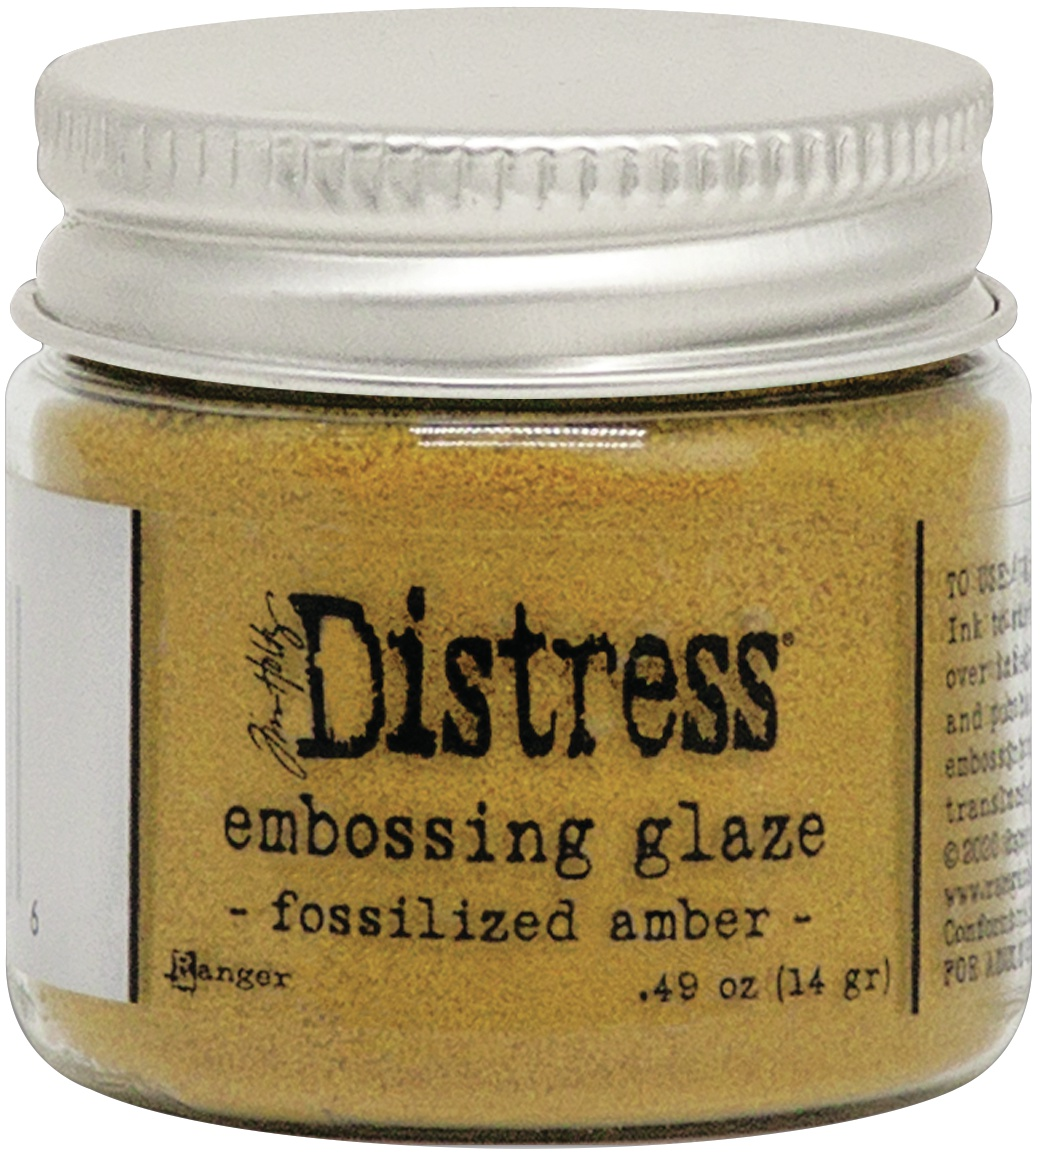 Tim Holtz Distress Embossing Glaze -Fossilized Amber